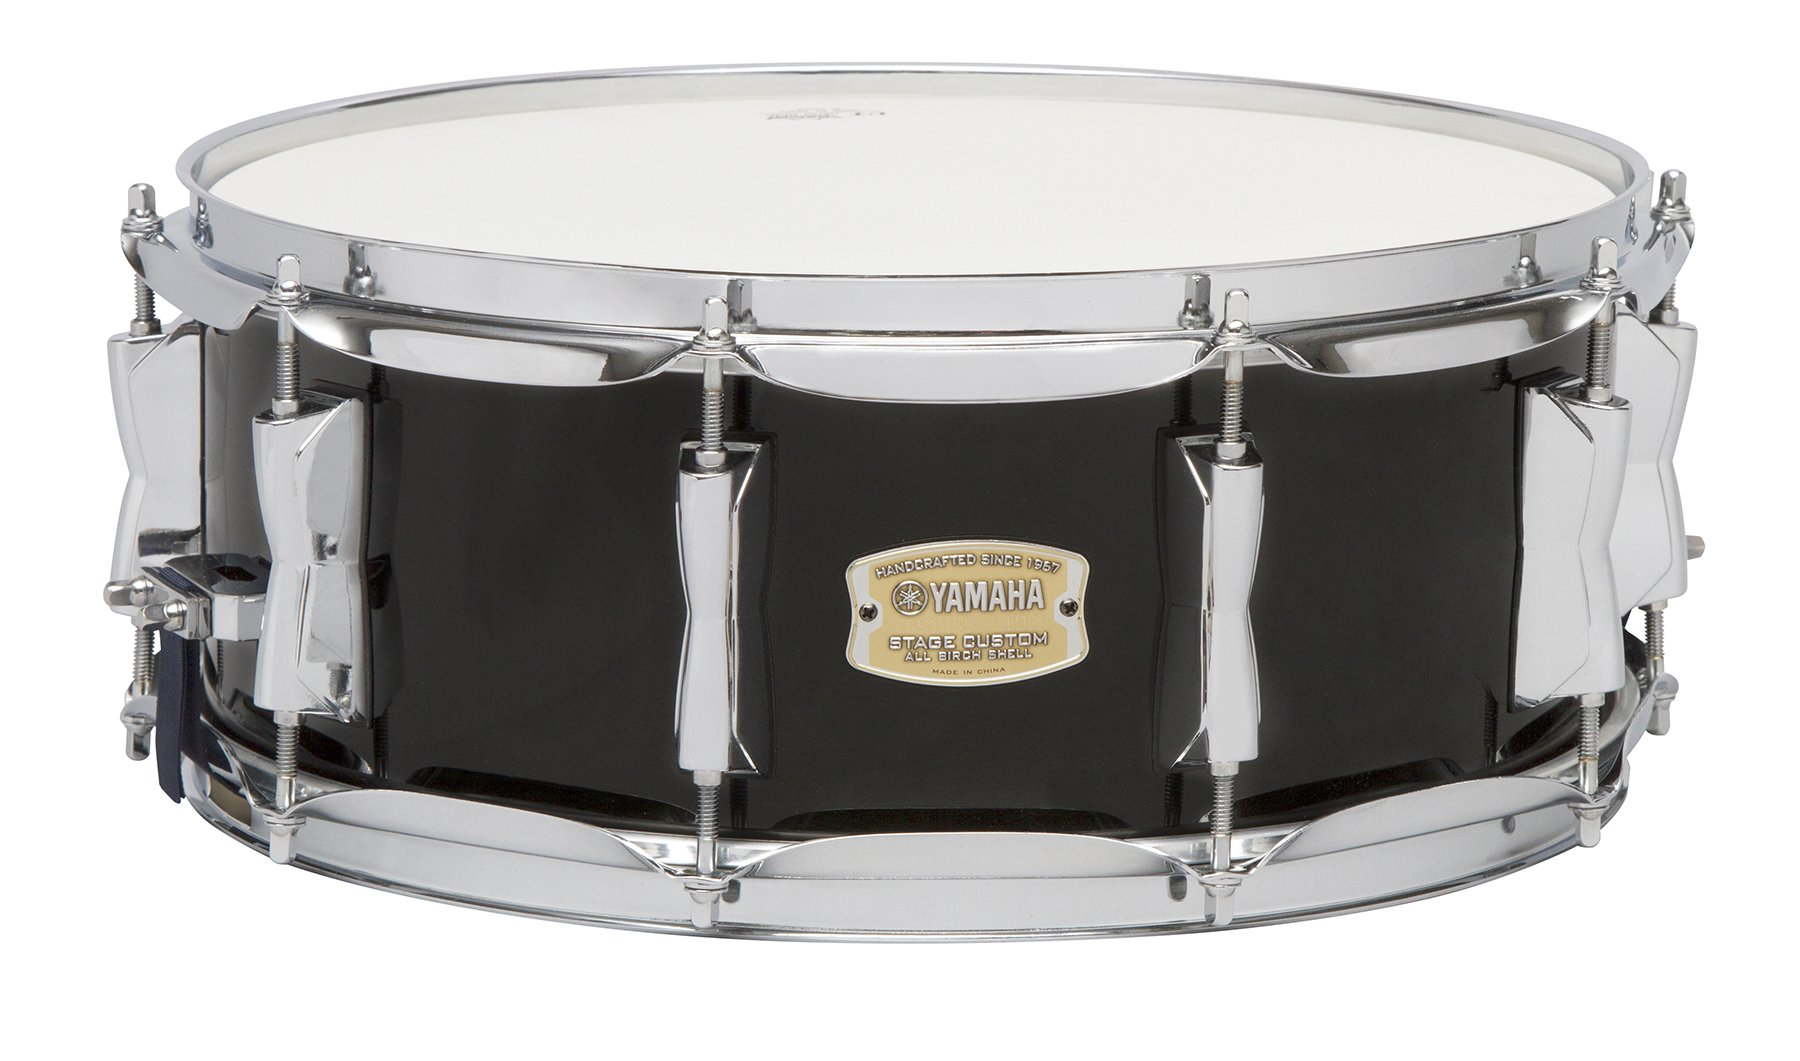 Yamaha Stage Custom Birch 14x5.5 Snare Drum, Raven Black by Yamaha PAC